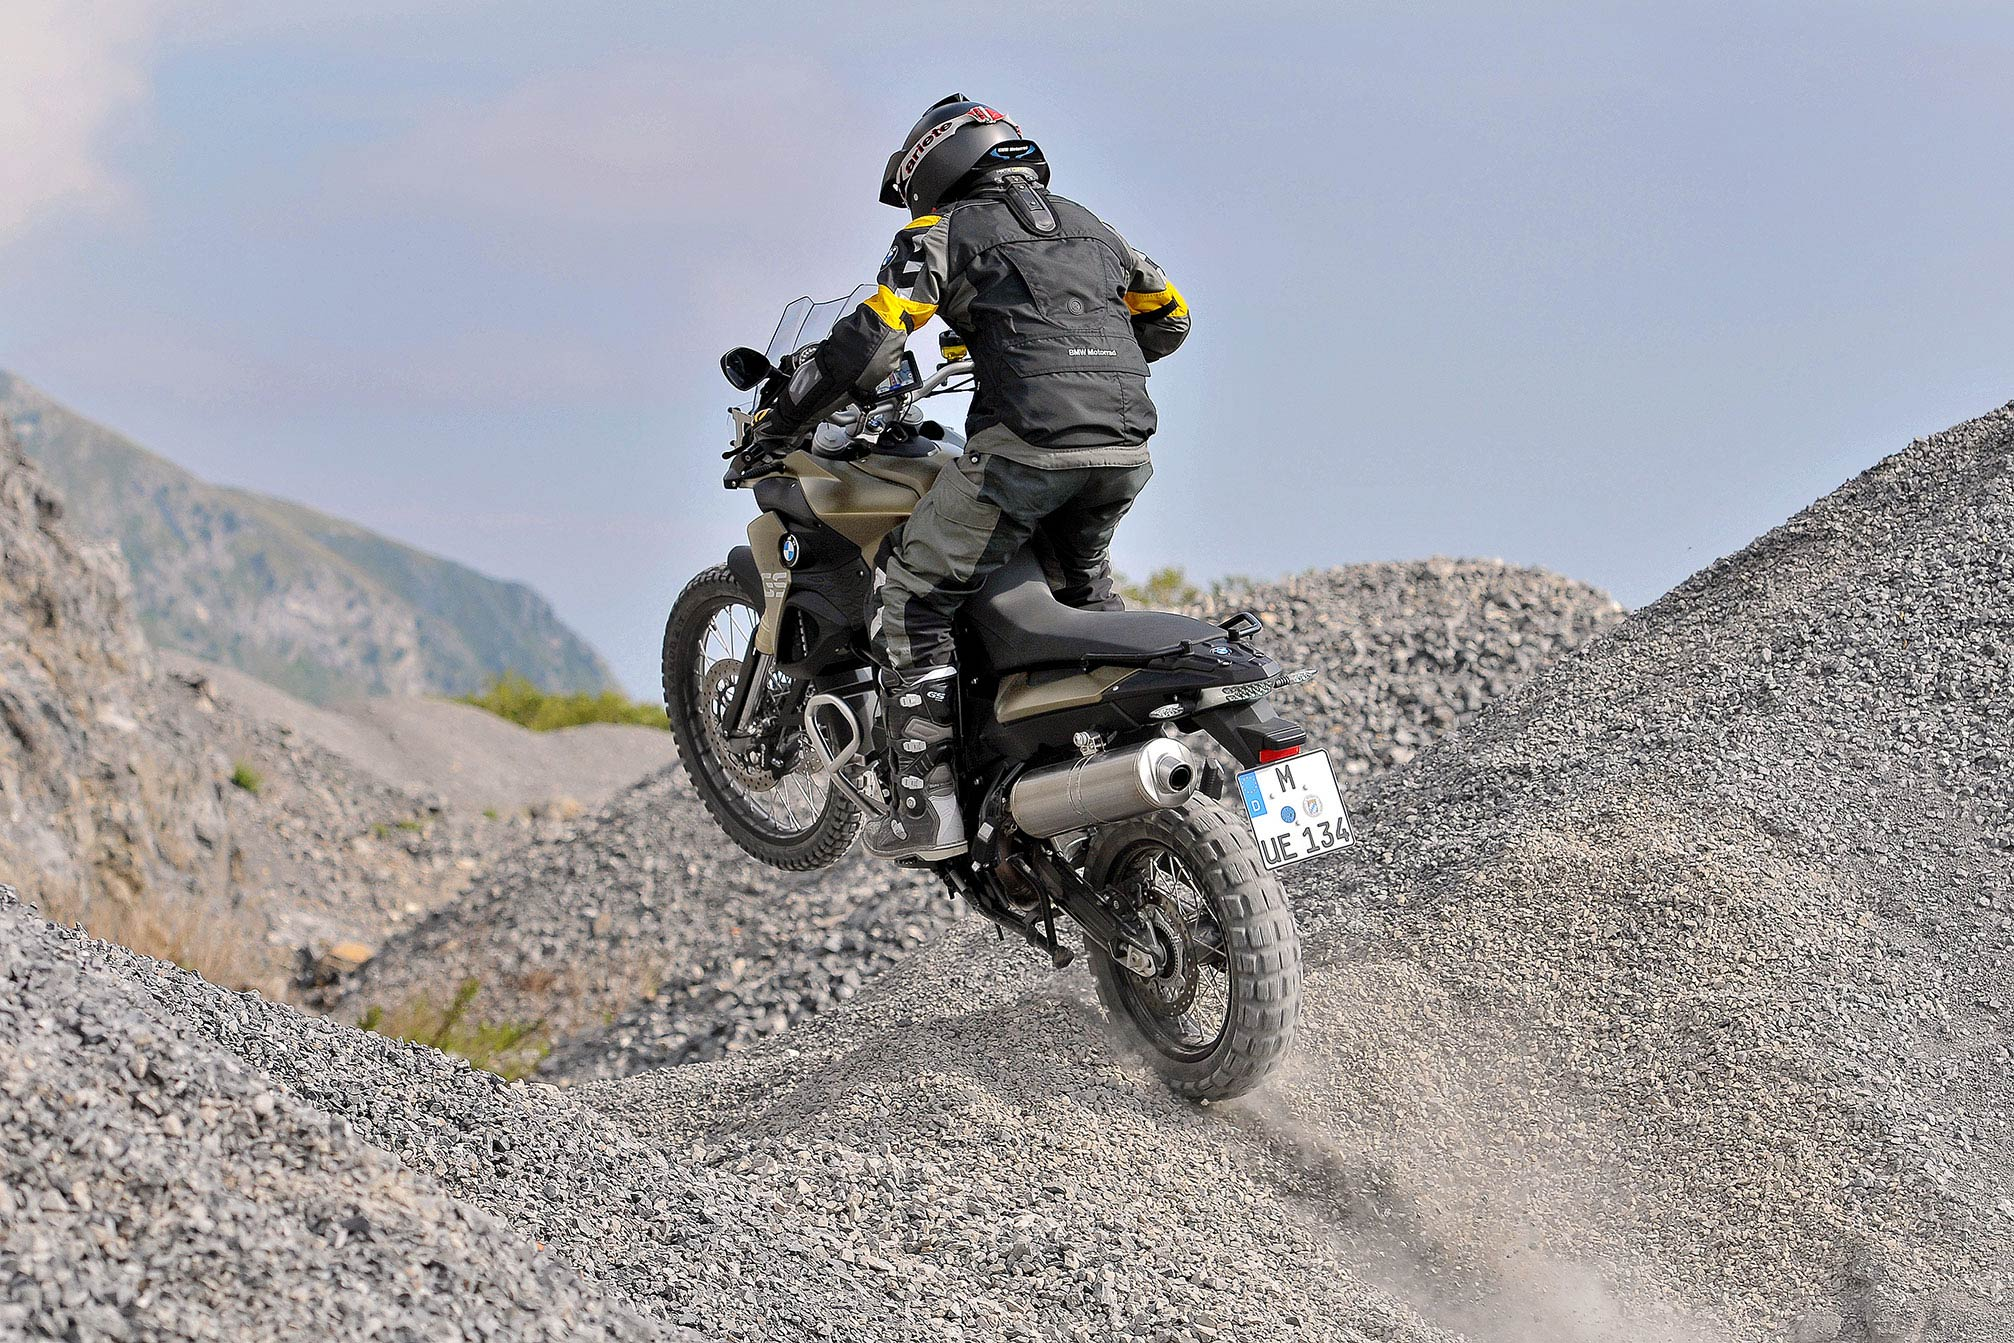 BMW F 800 GS images #148793